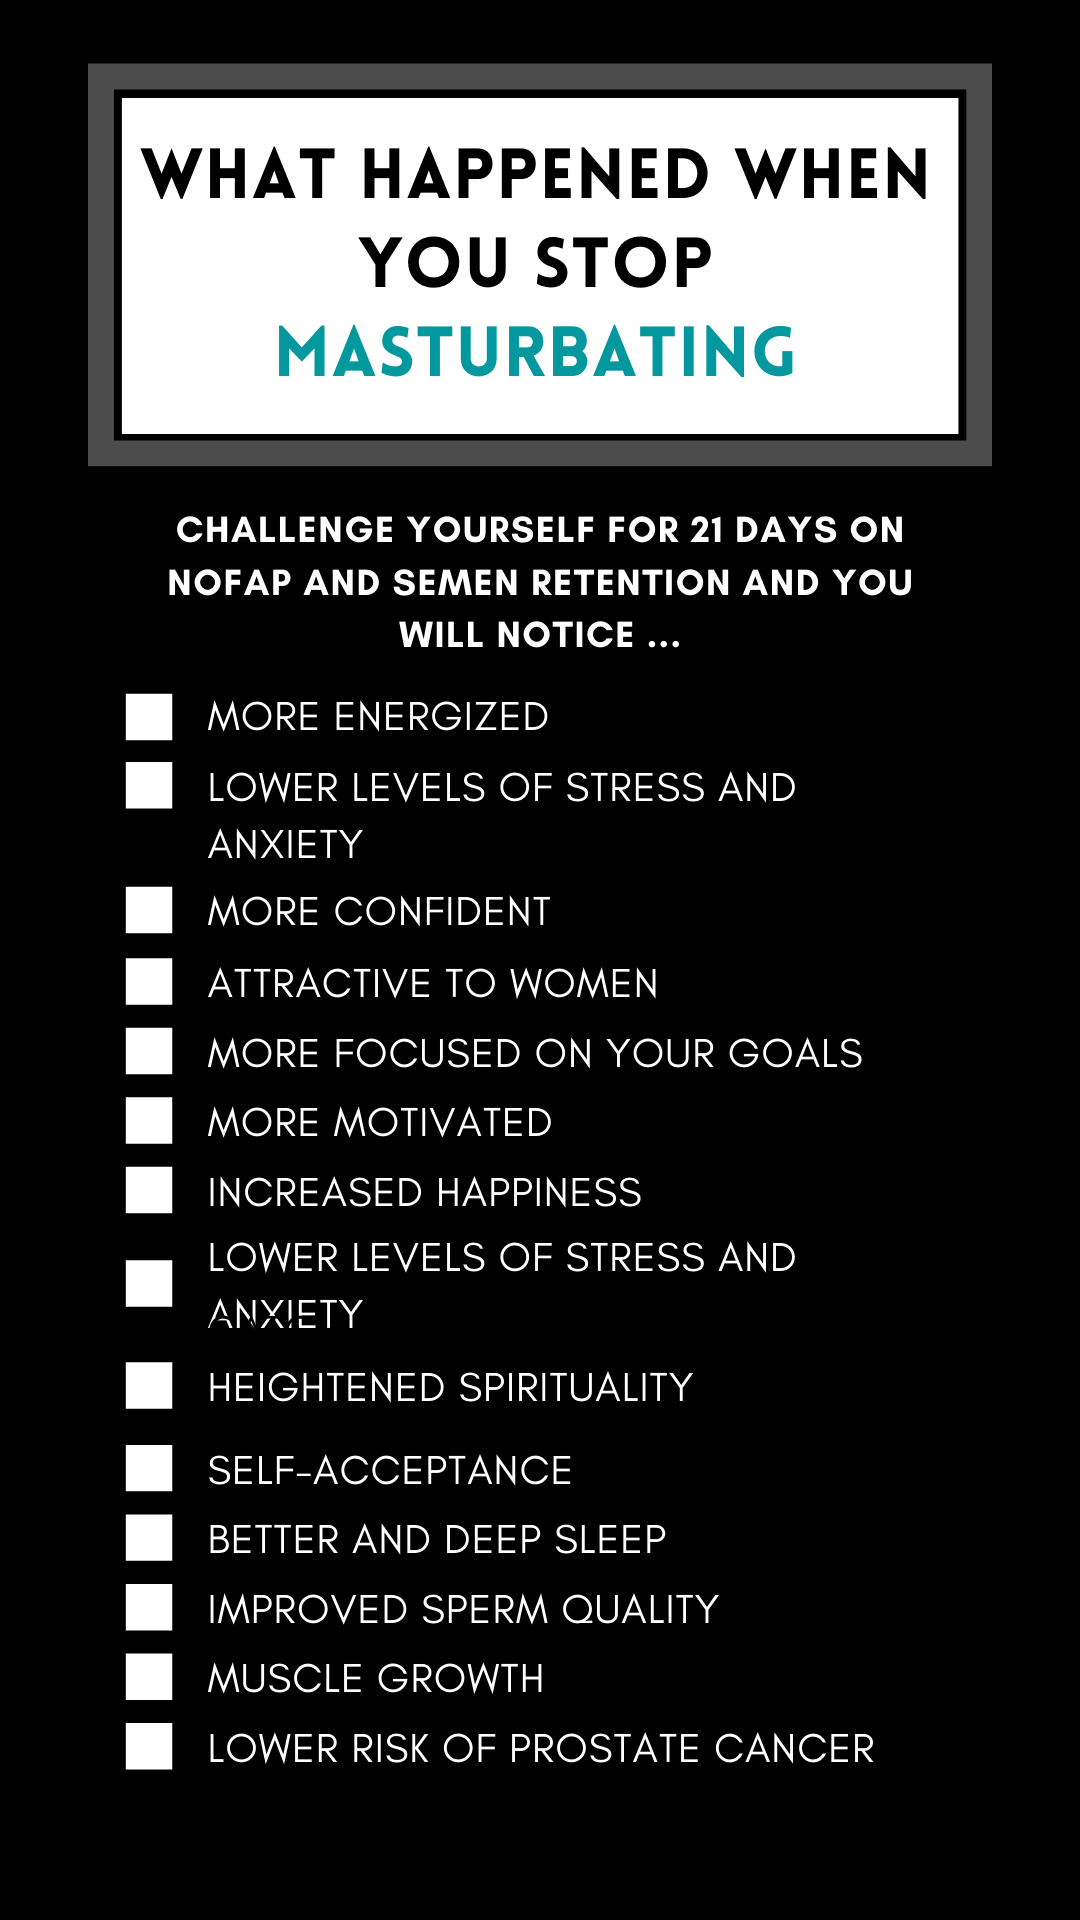 What are the benefits of nofap